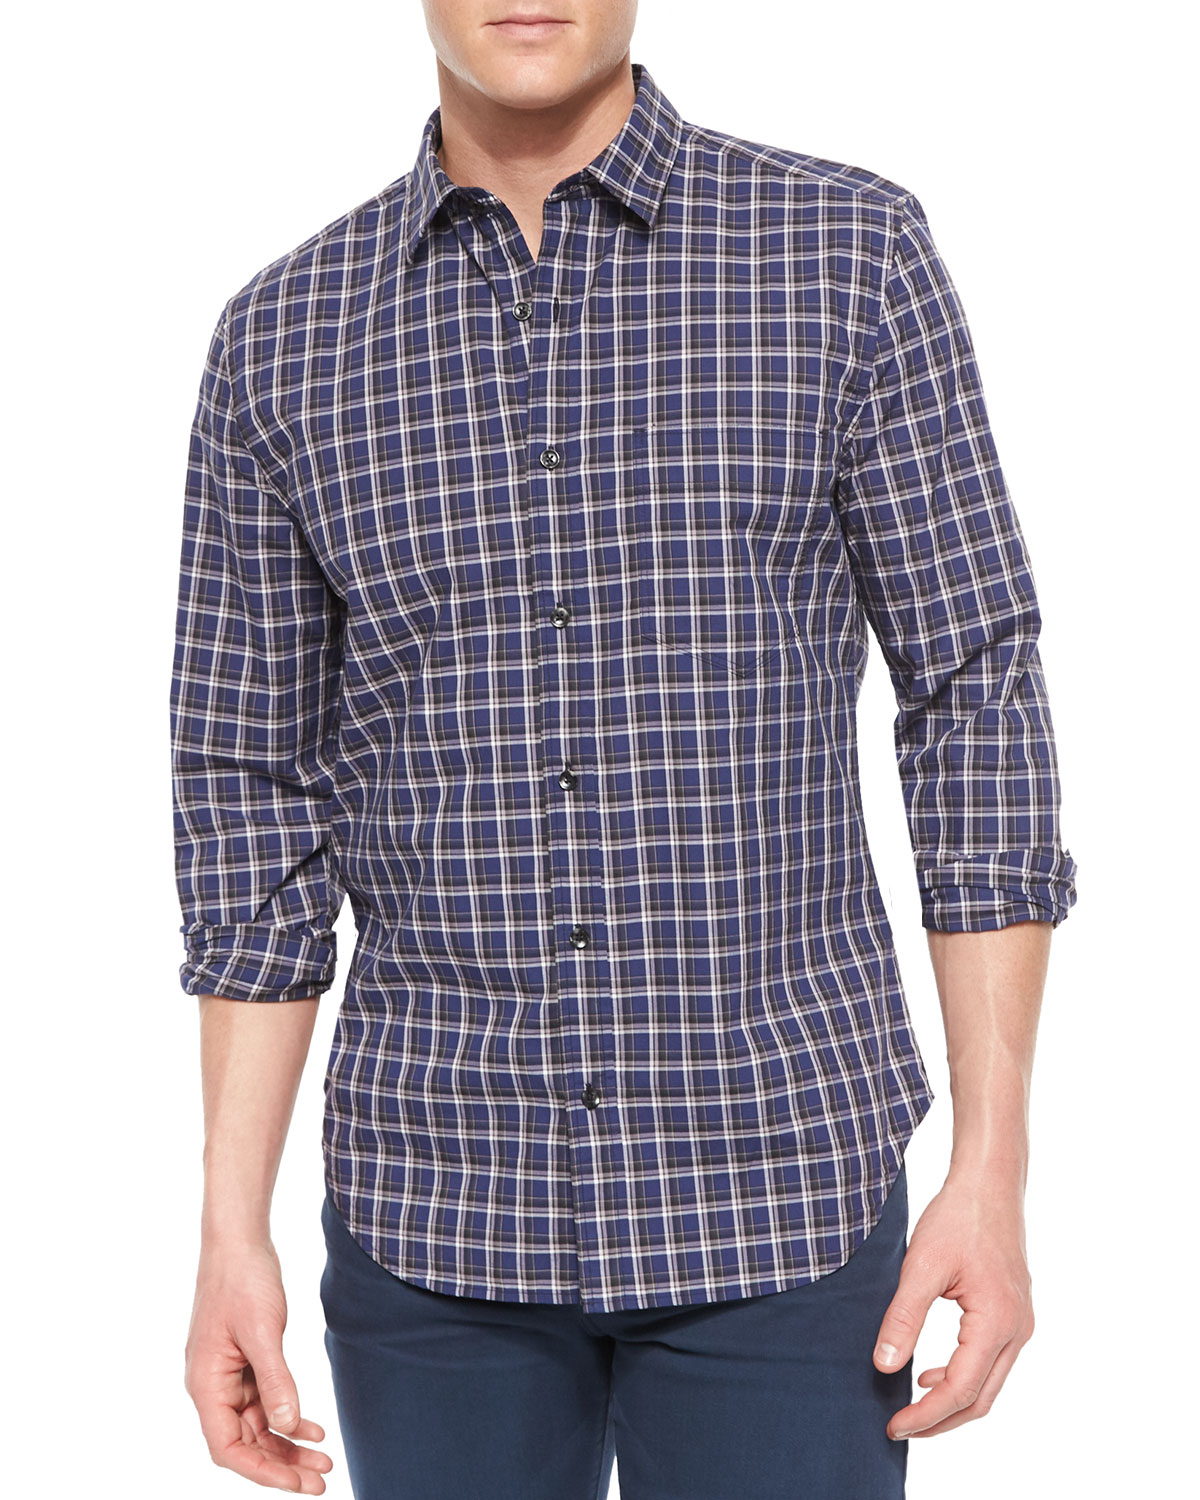 Long-Sleeve Plaid Sport Shirt, Blue/White/Navy